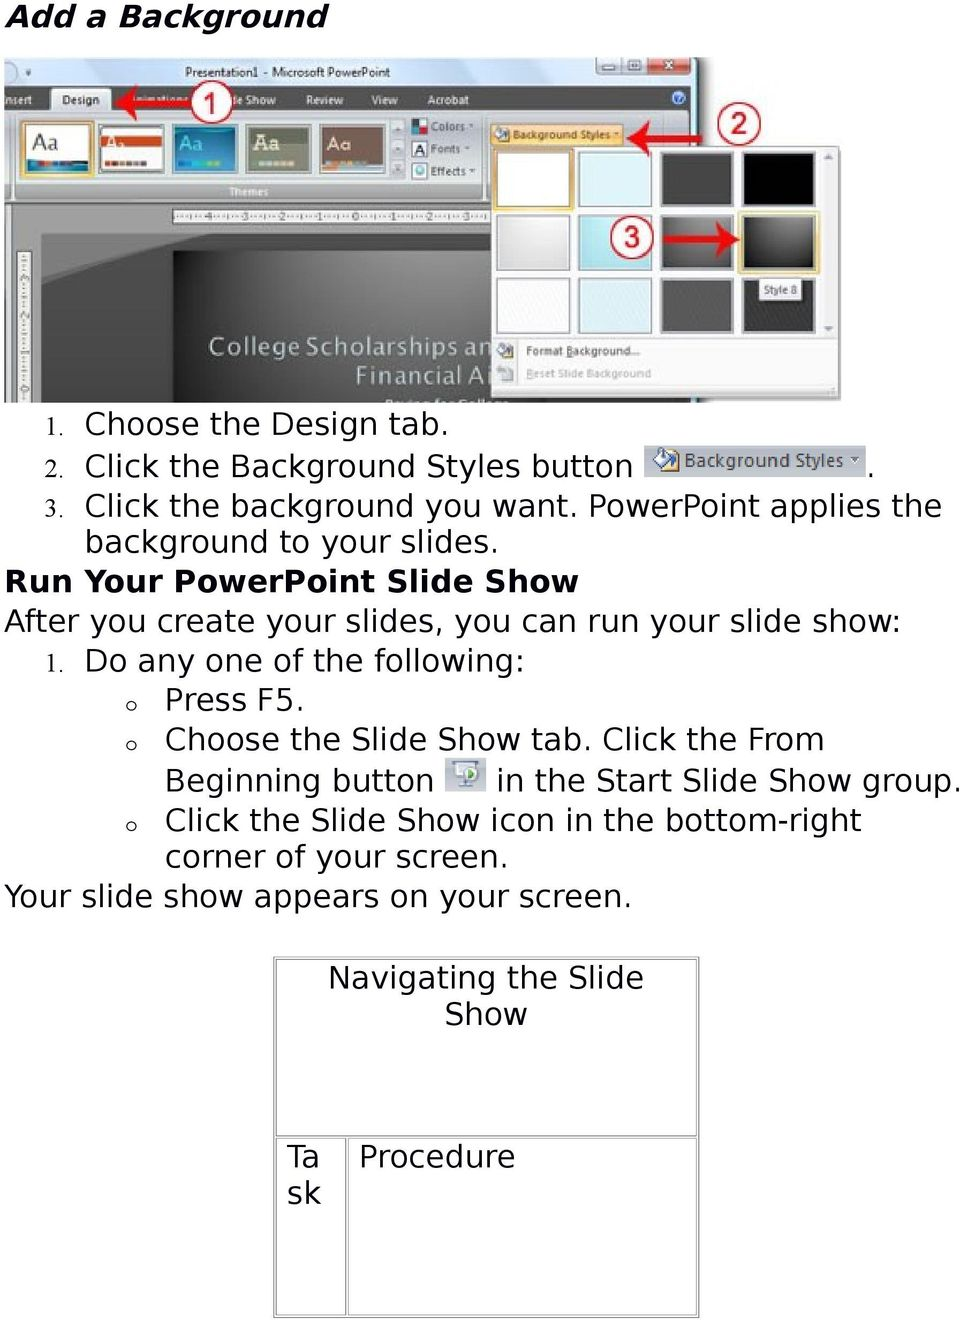 Run Your PowerPoint Slide Show After you create your slides, you can run your slide show: 1. Do any one of the following: o Press F5.